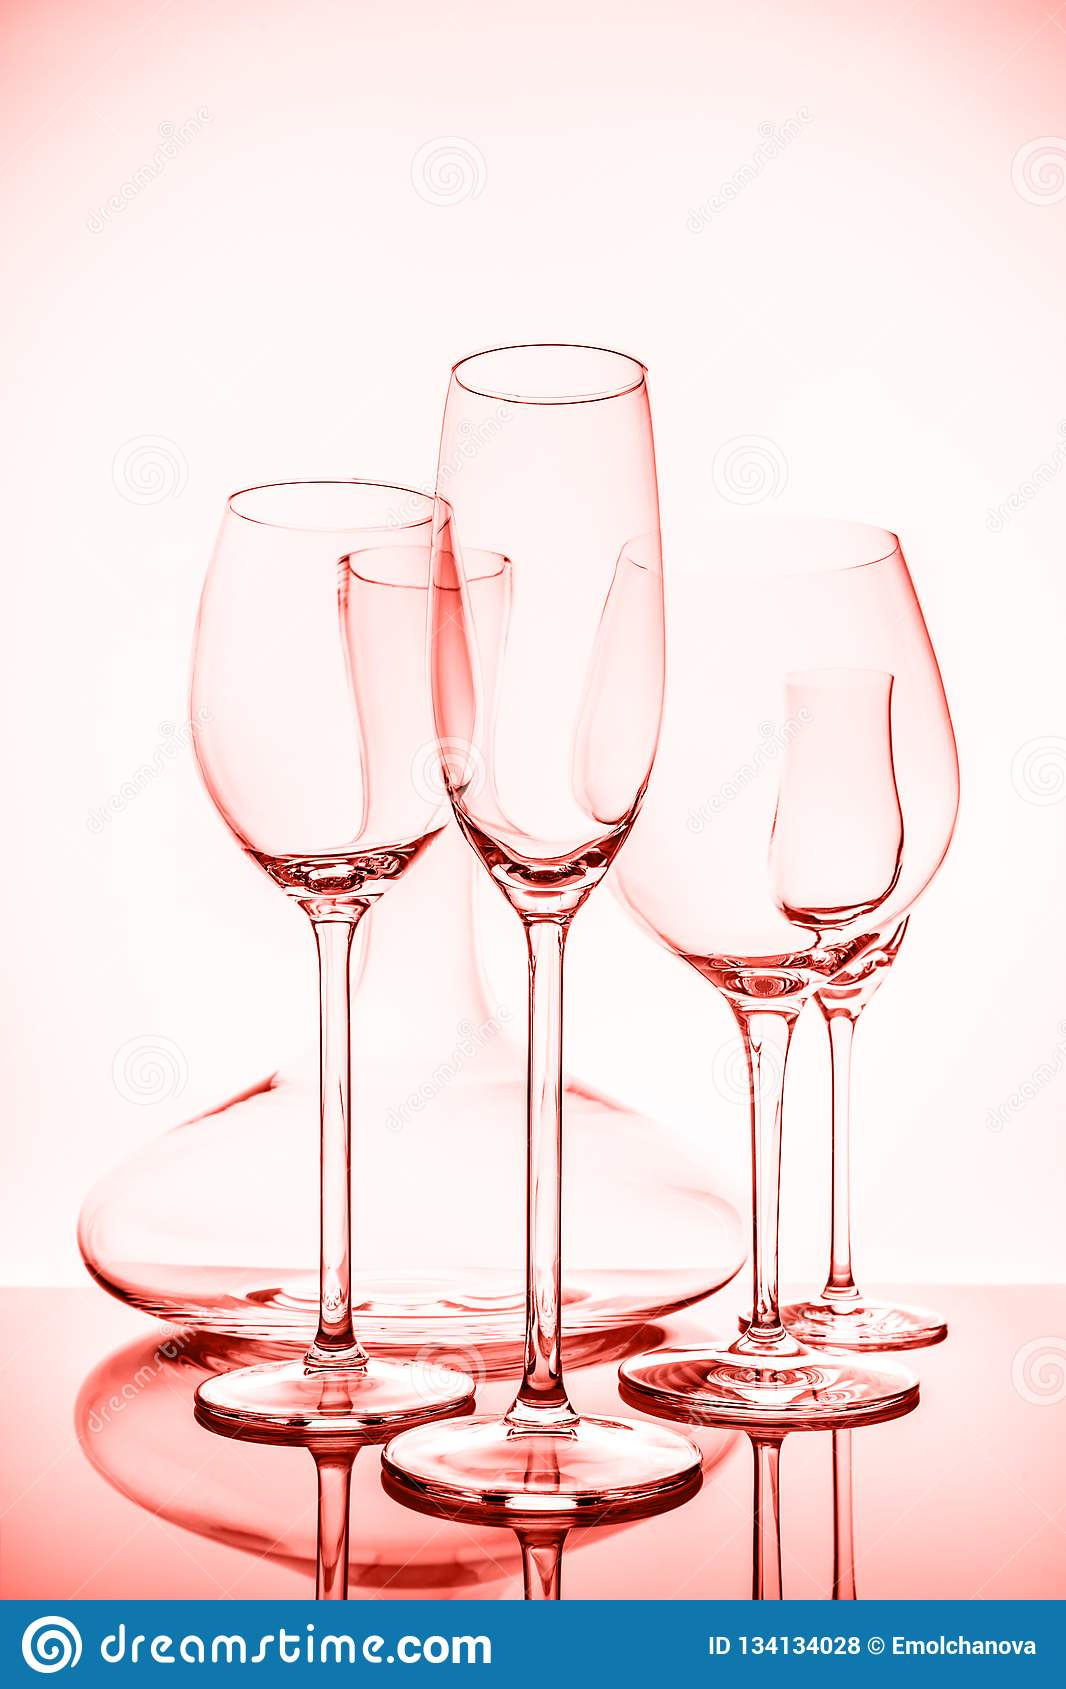 Glassware selection with wine, champagne, liquour glasses and decanter on the light background . Living coral theme - color of the